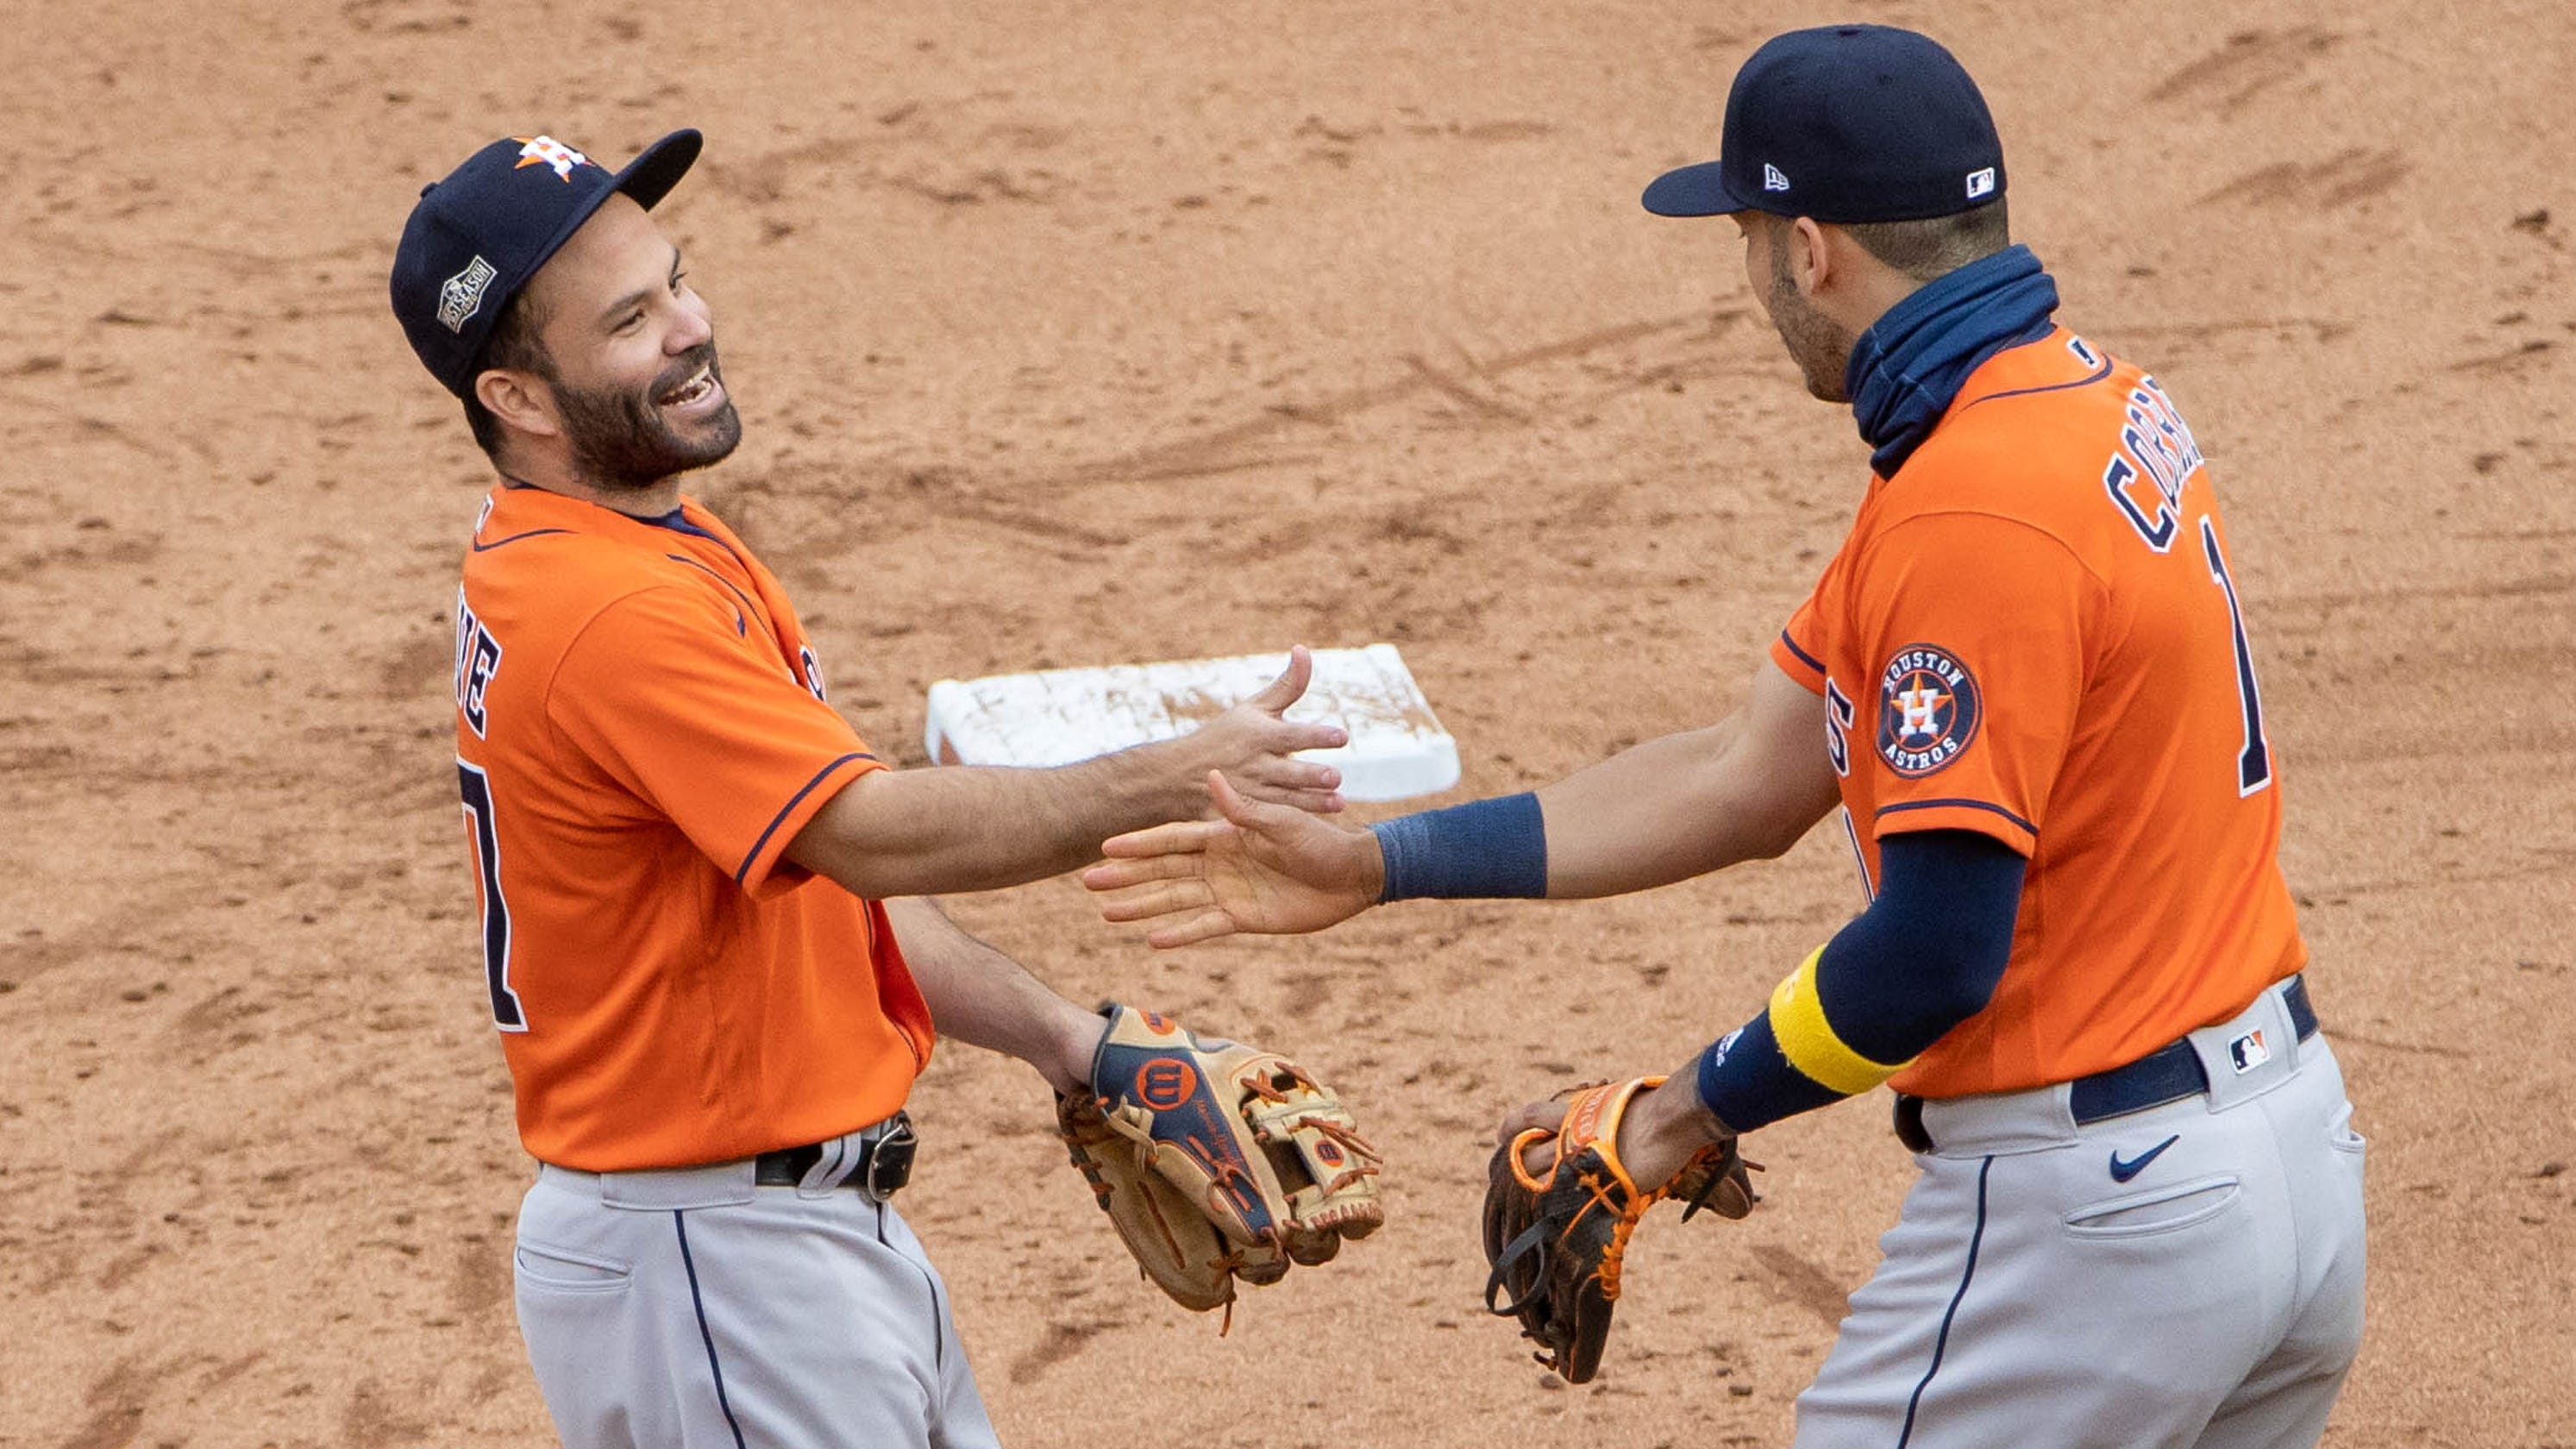 Astros' Game 1 win further riles up the haters